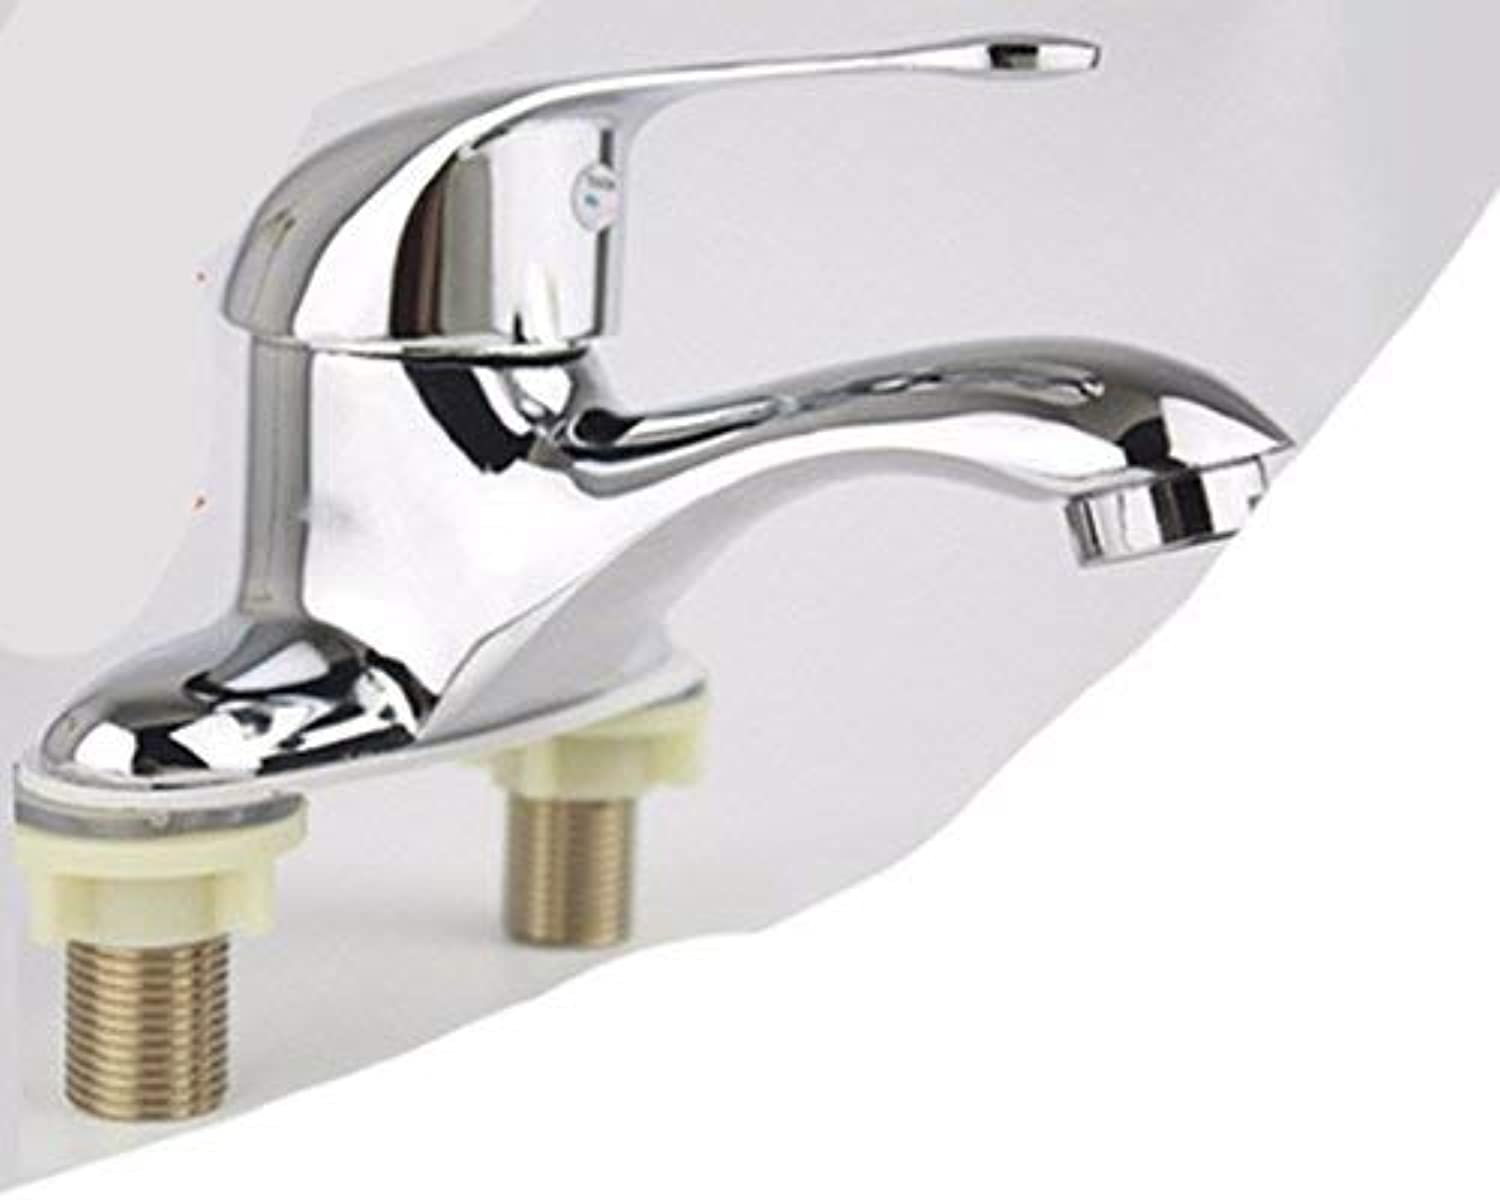 Hhgold European style retro style copper three-hole wash your face hot and cold water tap